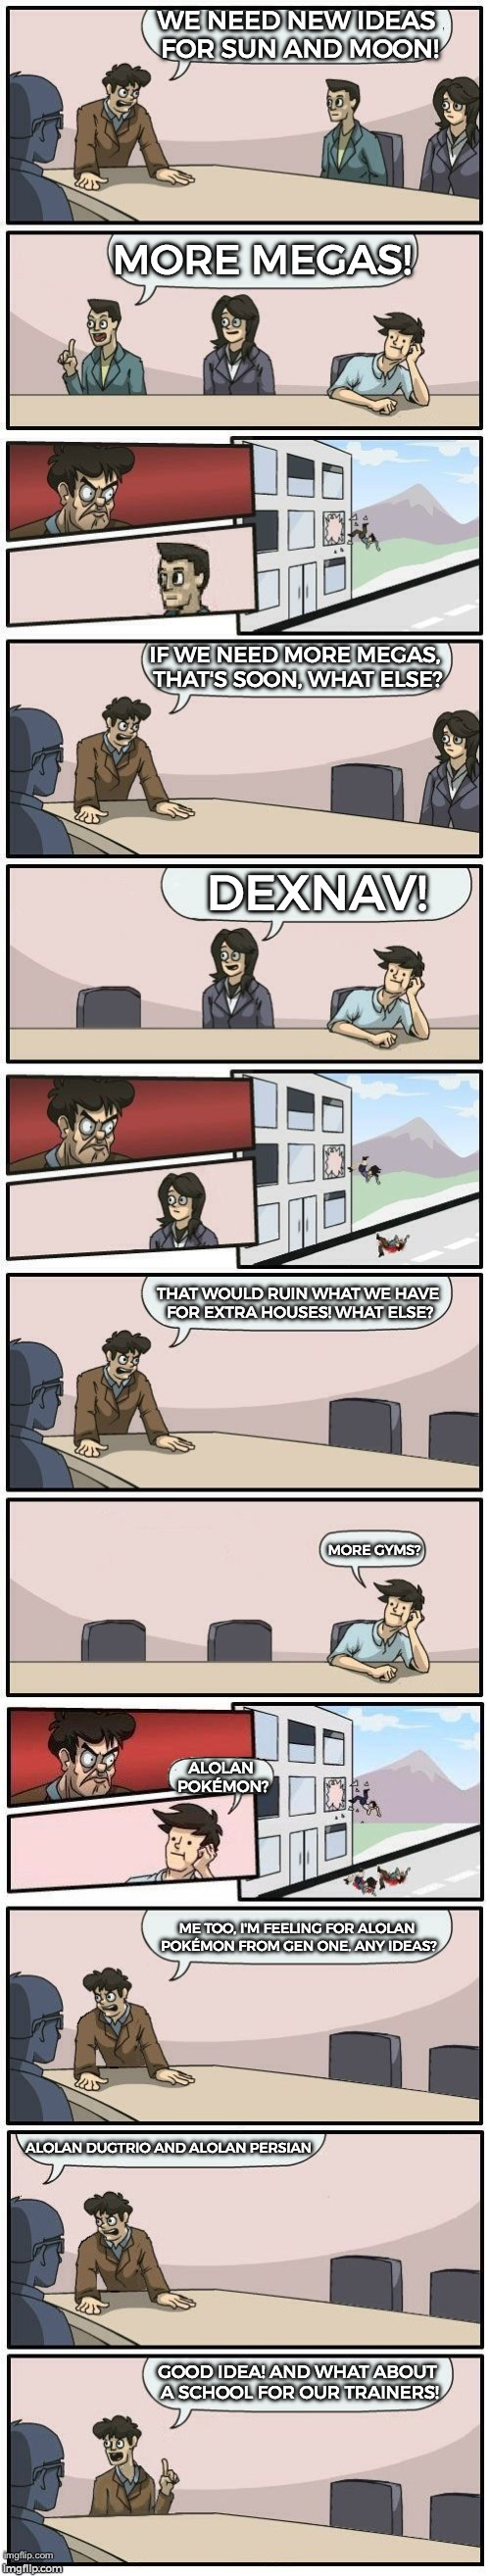 Any Ideas on Sun and Moon? | WE NEED NEW IDEAS FOR SUN AND MOON! MORE MEGAS! IF WE NEED MORE MEGAS, THAT'S SOON, WHAT ELSE? DEXNAV! THAT WOULD RUIN WHAT WE HAVE FOR EXTR | image tagged in boardroom meeting suggestions extended,funny,memes,pokemon,sun and moon,pokemon sun and moon | made w/ Imgflip meme maker